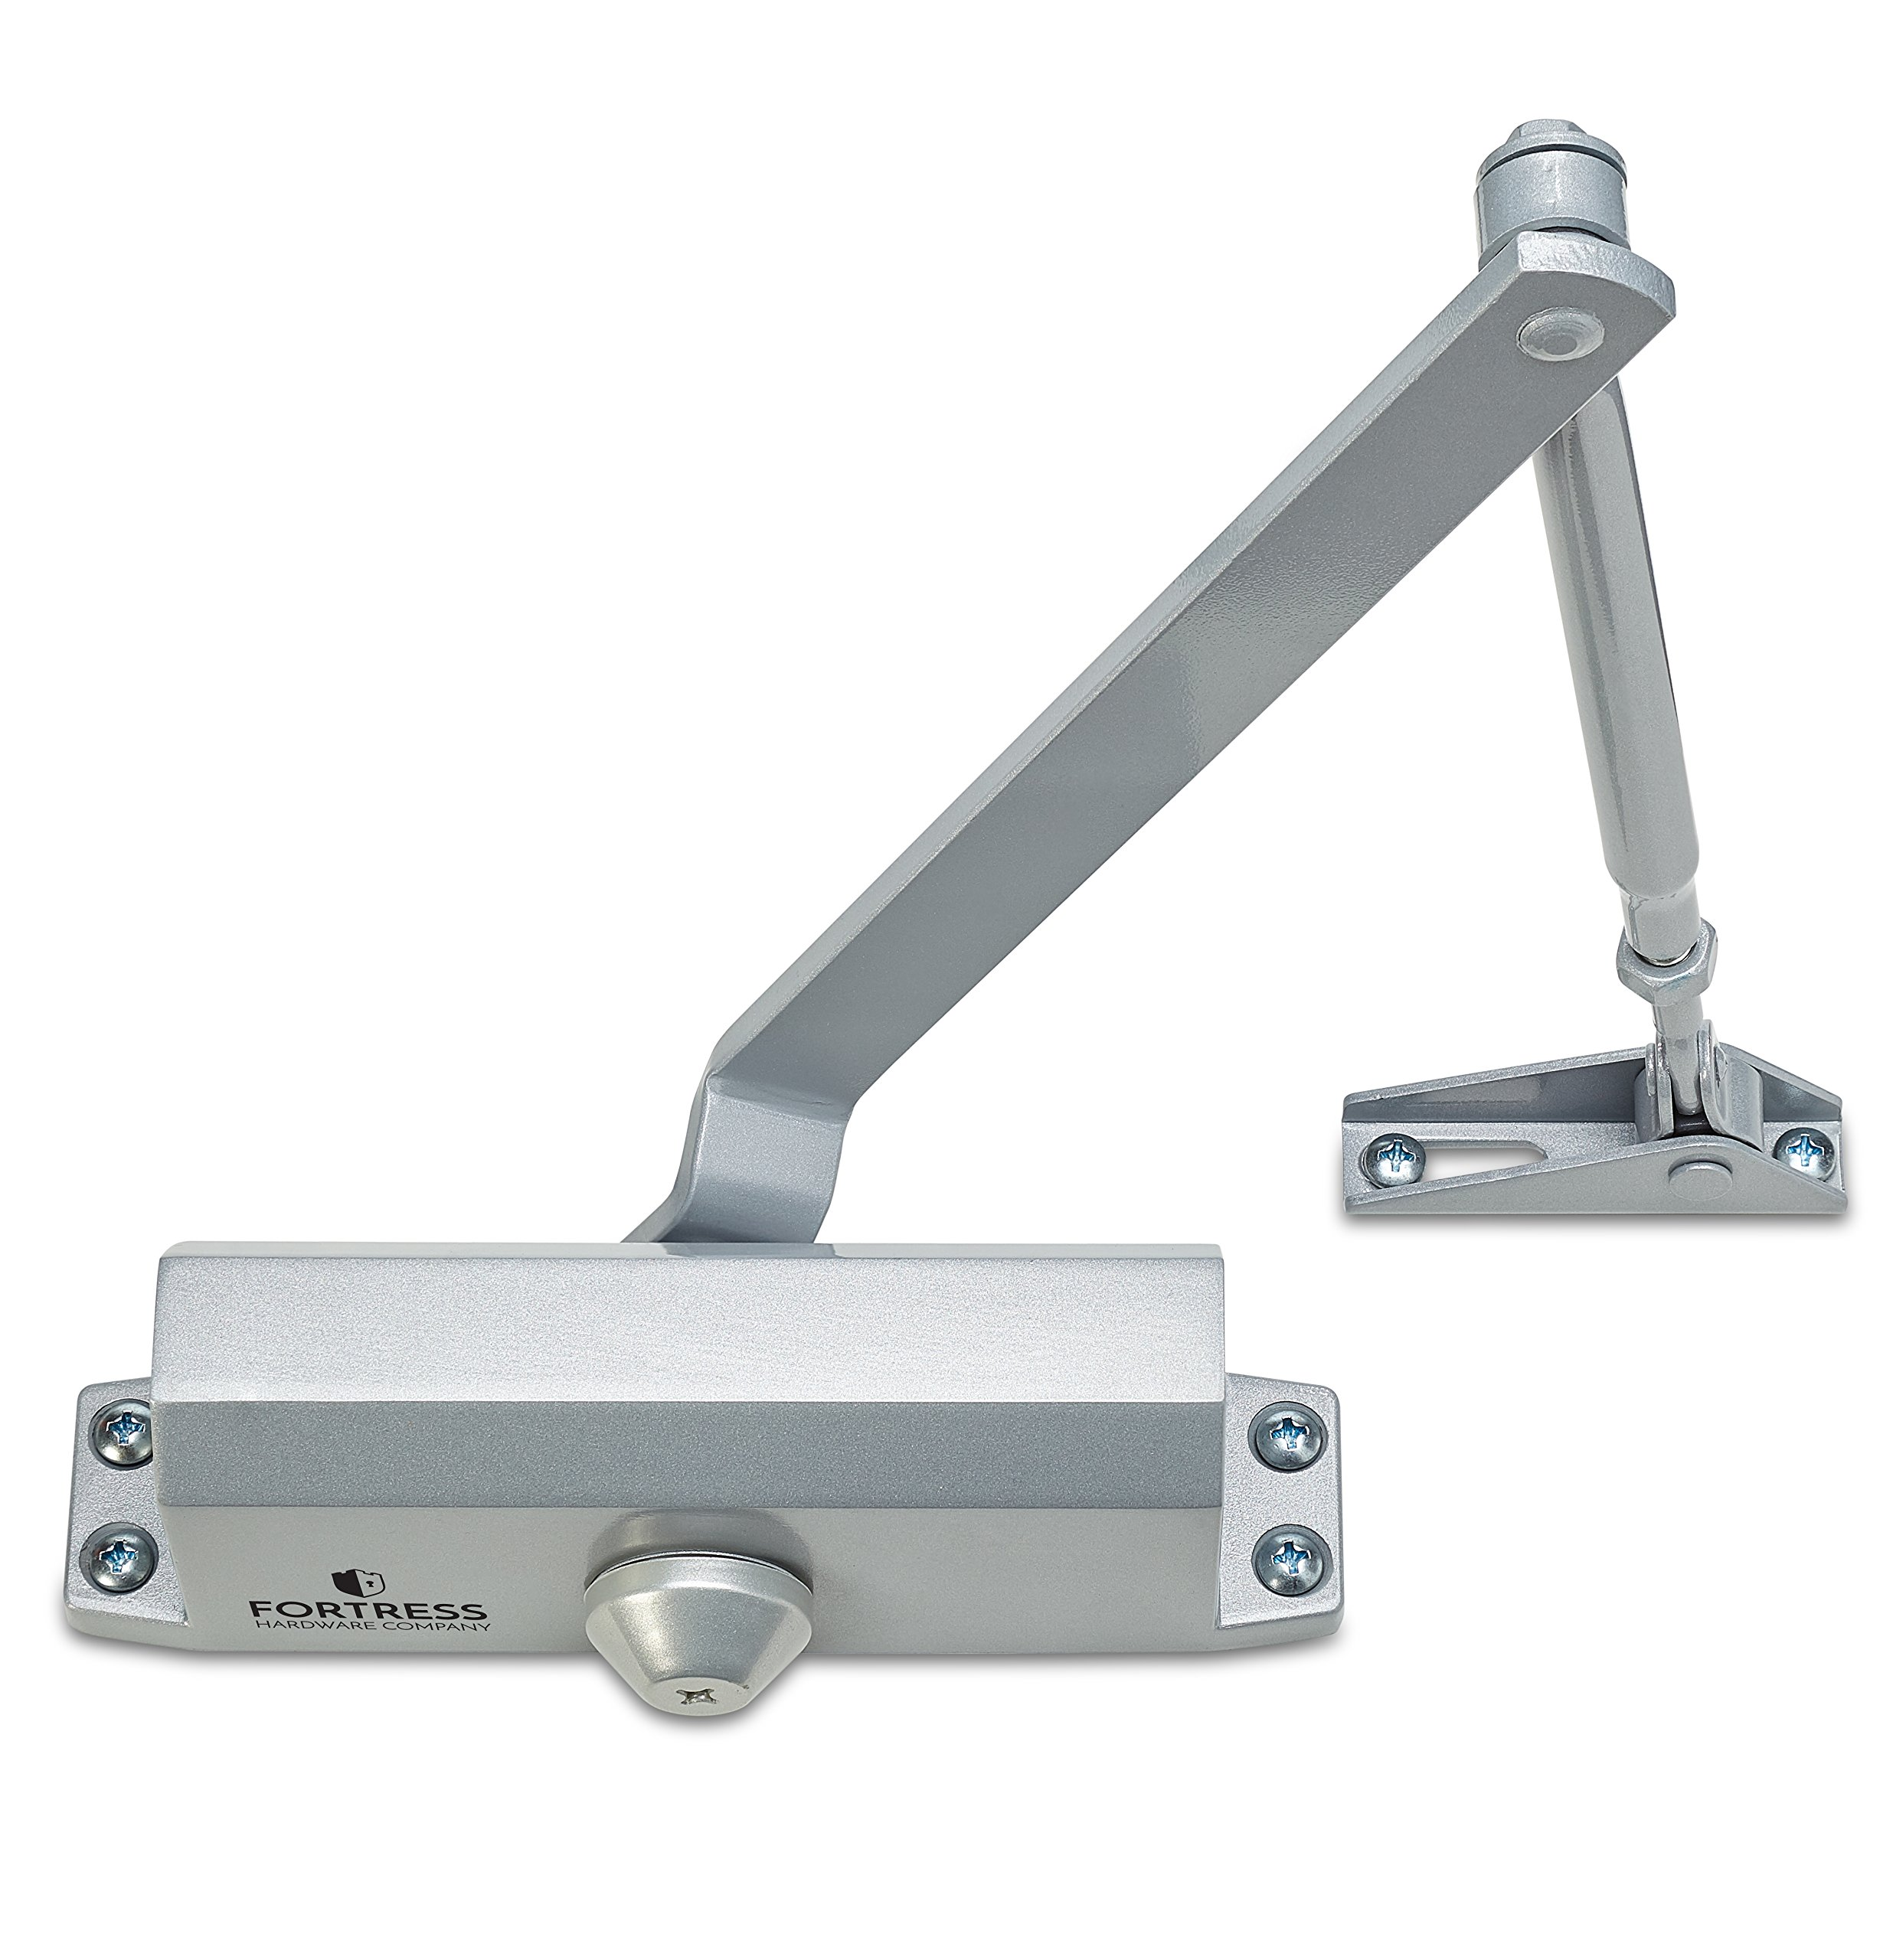 smart products door standard couk doormaster en cylinders replacement british mechanical closers systems mounted automatic fetchfile alarm closer home surface multipoint yale locks